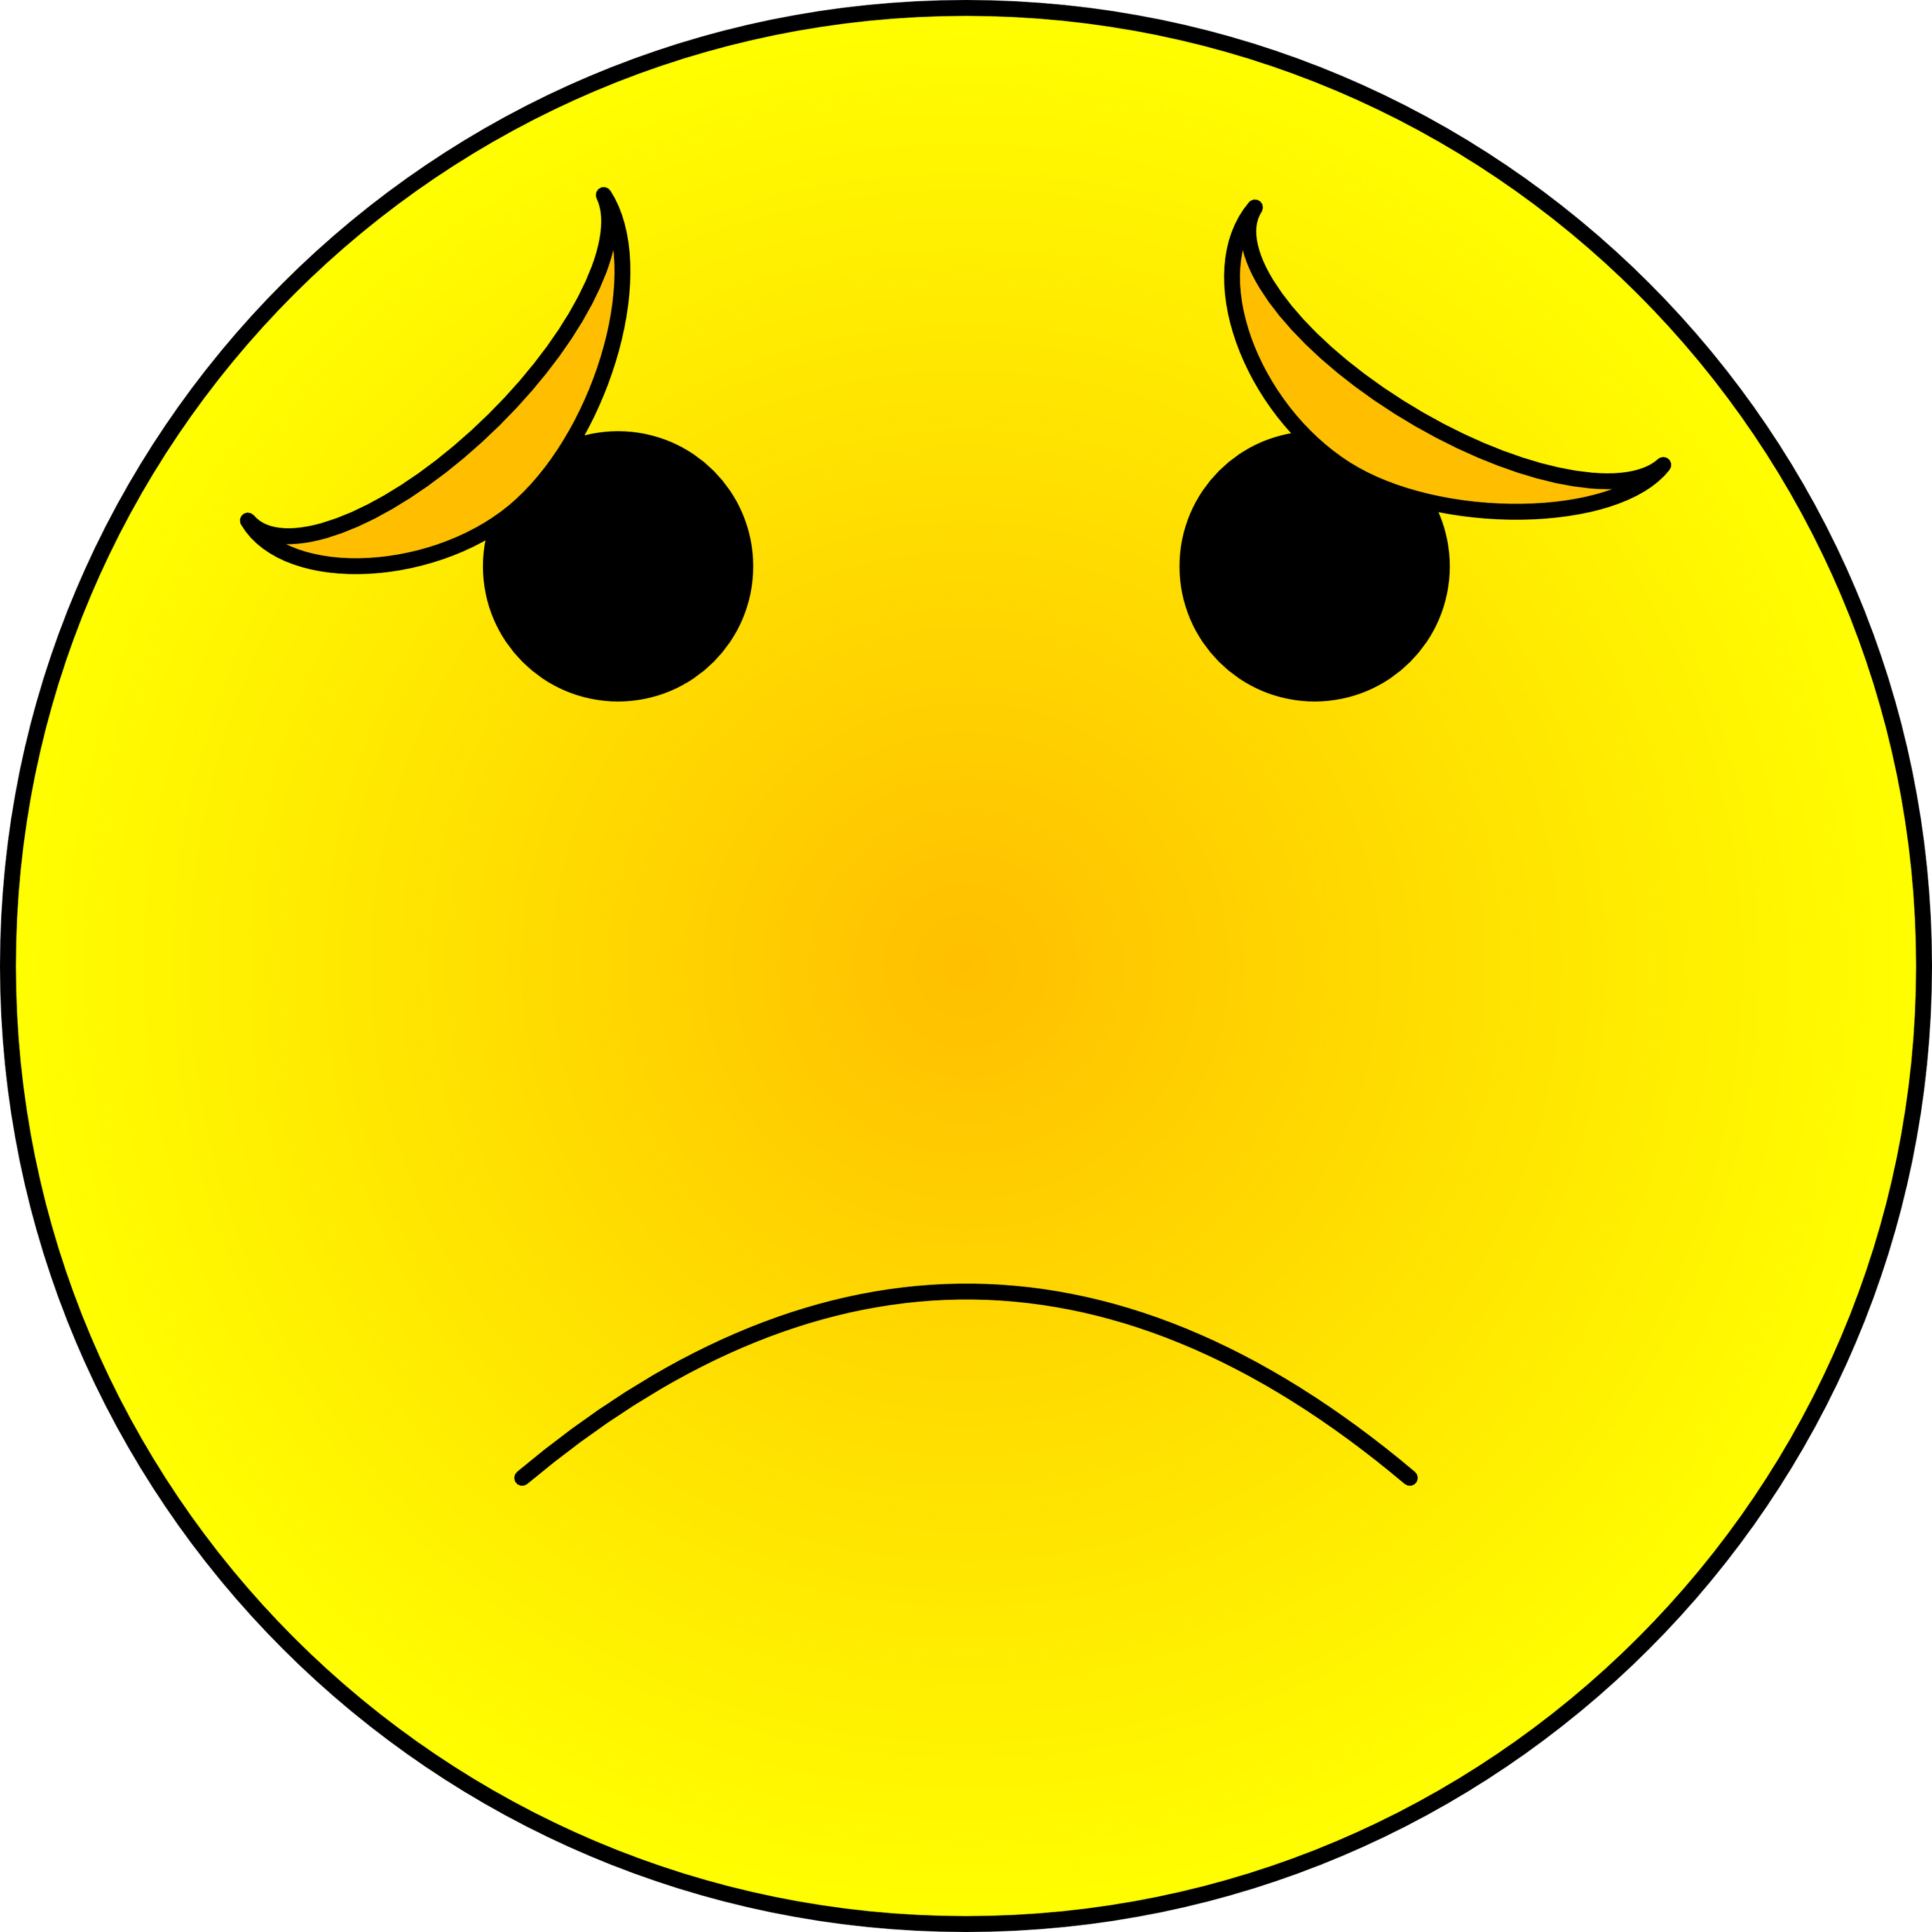 Smiley clipart upset #3604 Face of Clipart Smiley